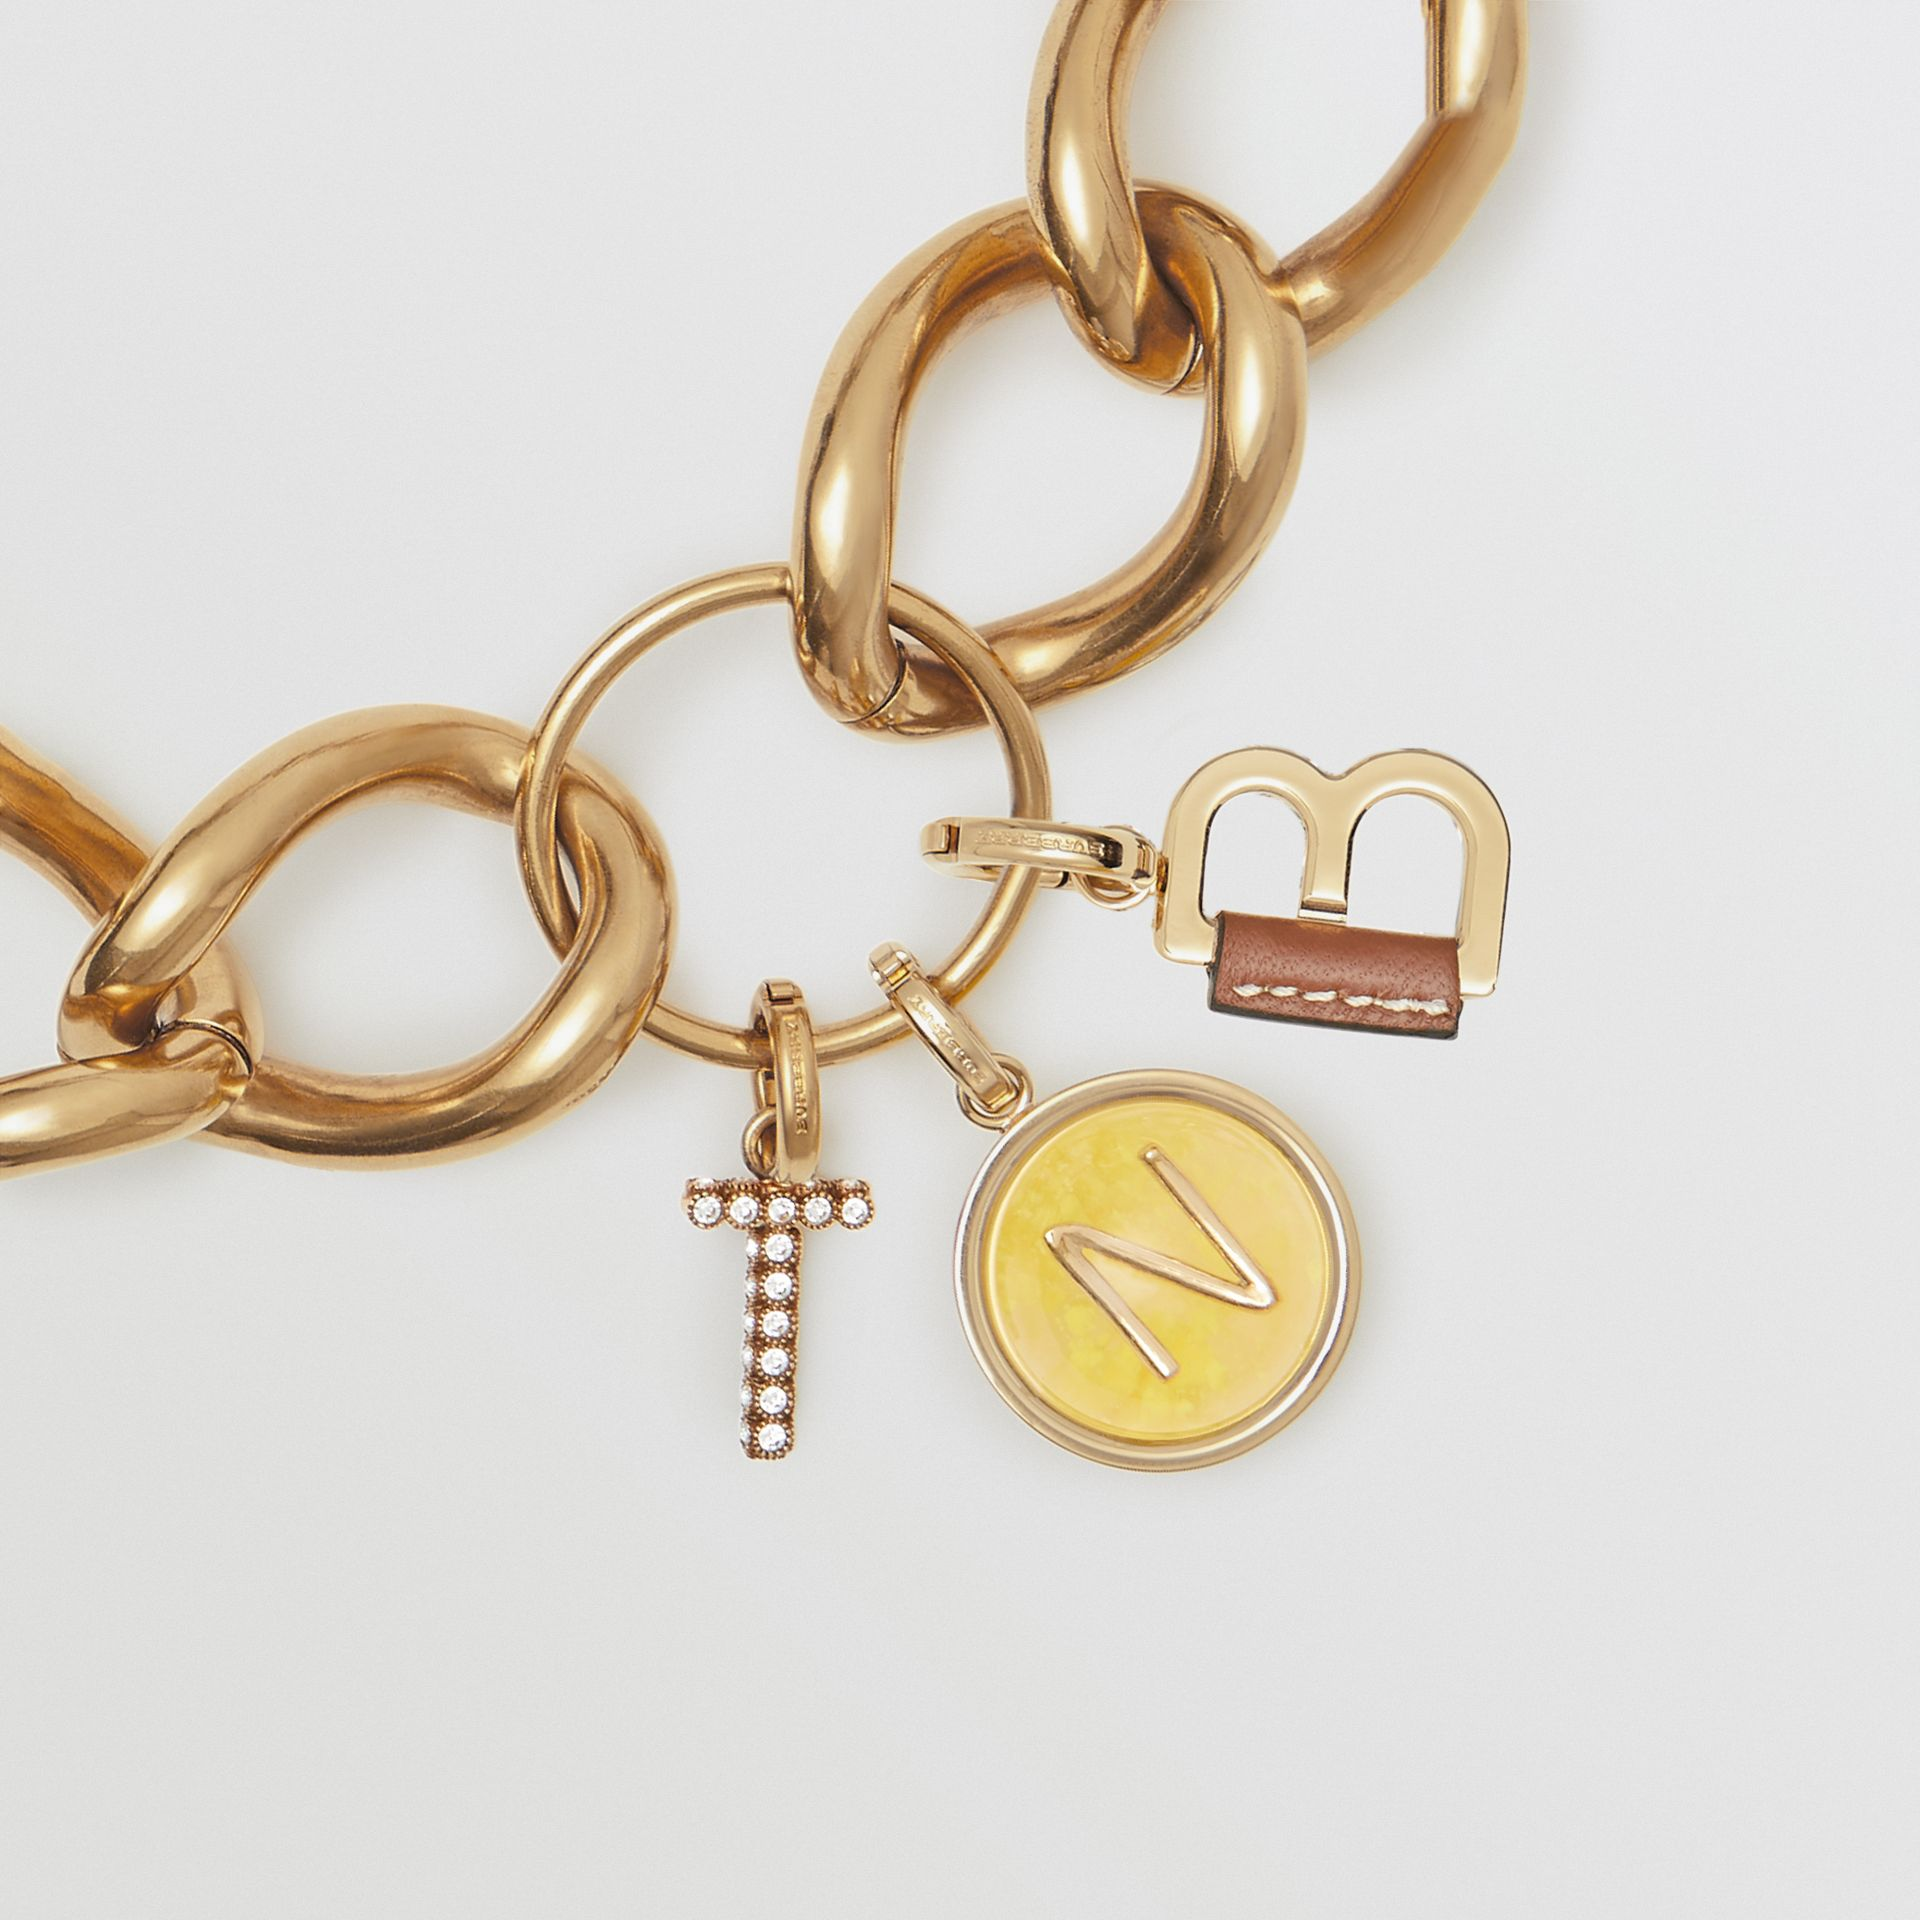 Marbled Resin 'I' Alphabet Charm in Gold/mimosa - Women | Burberry - gallery image 2